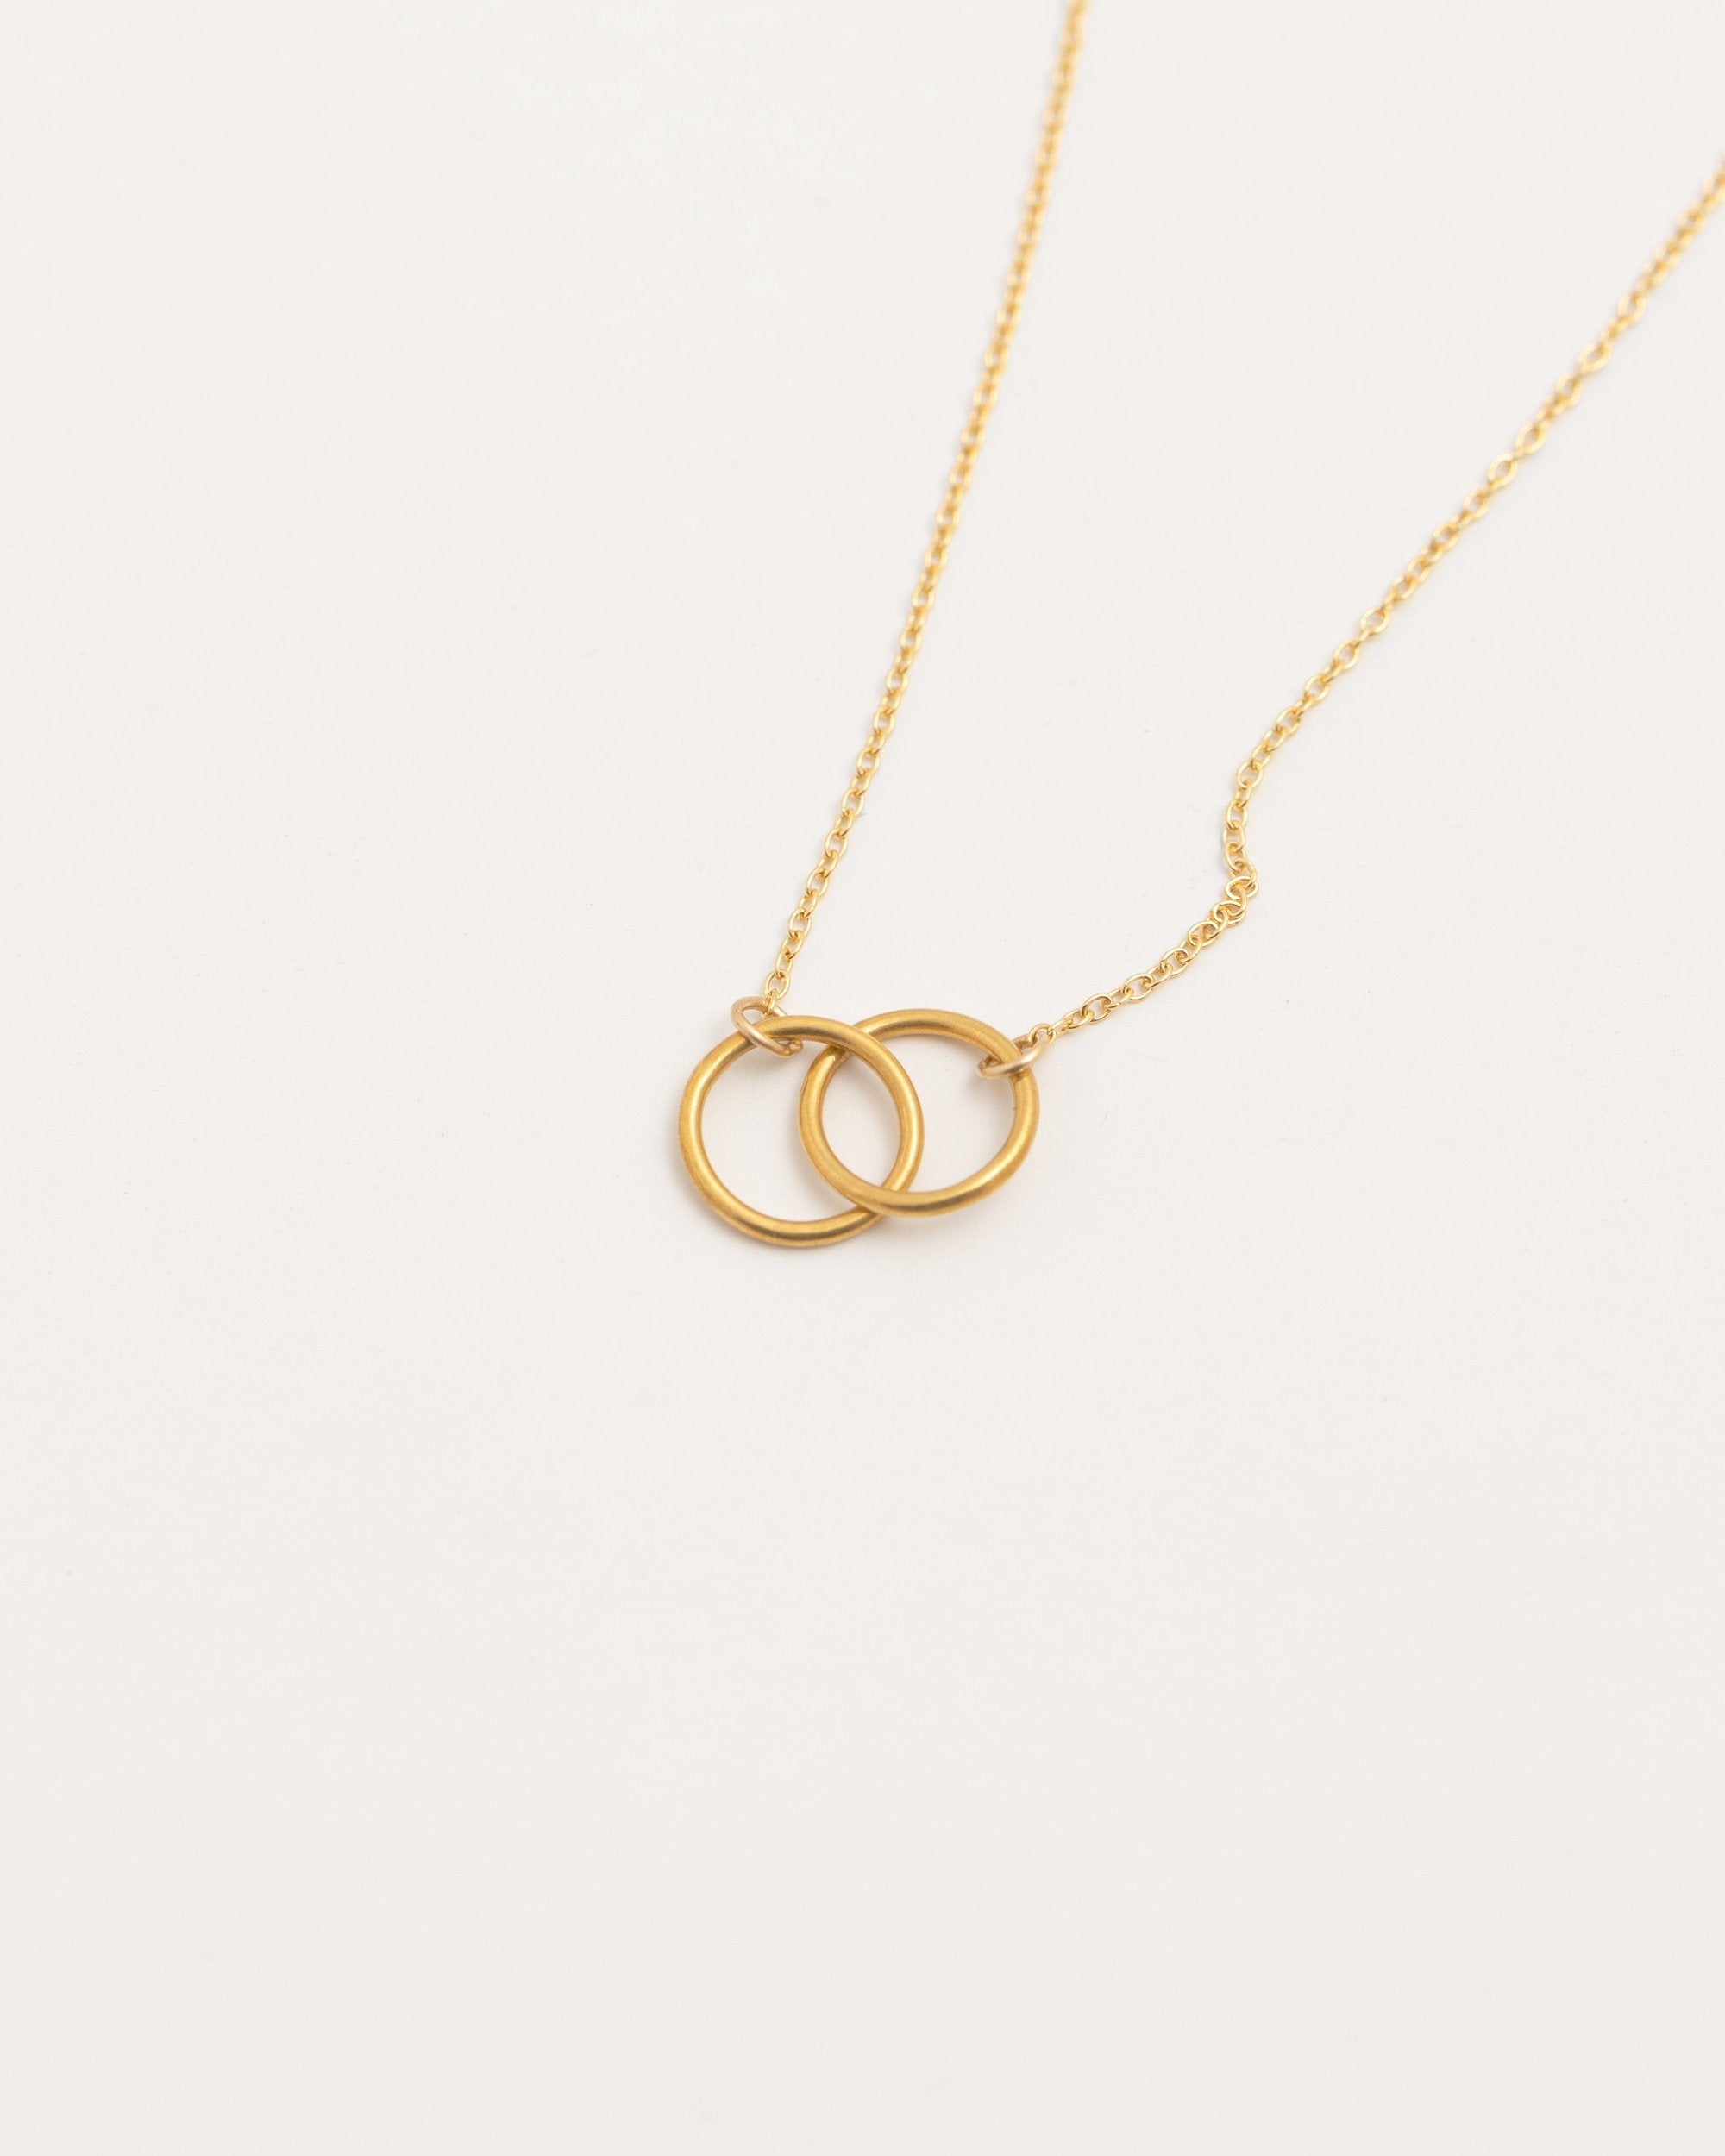 Modern Citizen | Modern Citizen-14K Gold Interlocking Ring Necklace (Gold)-Necklaces-One Size-Gold- $110